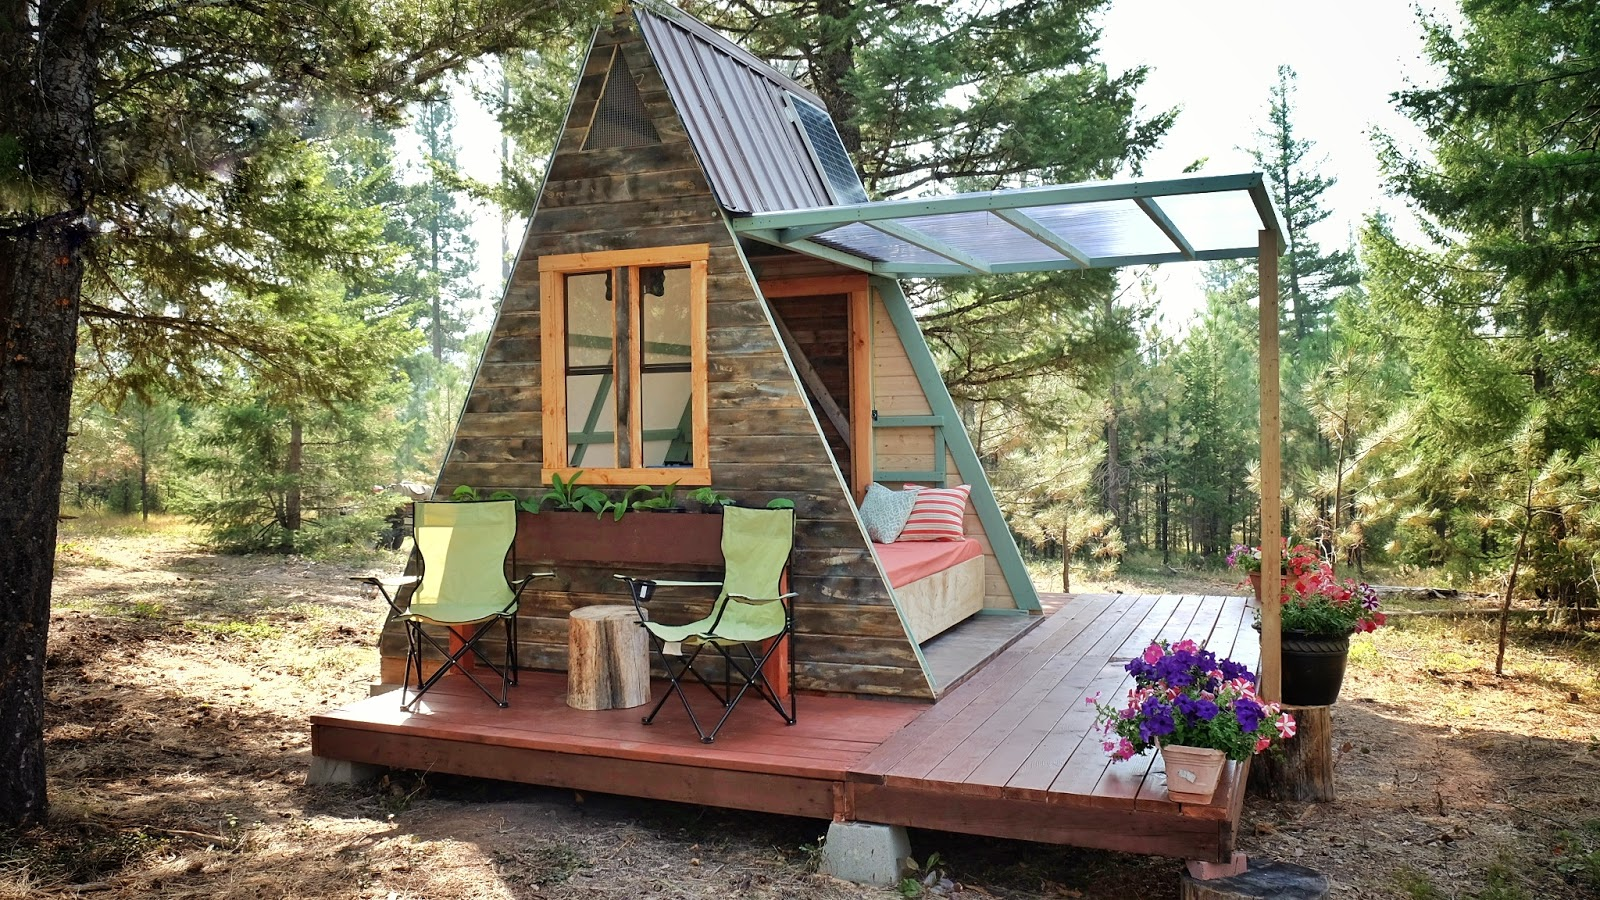 Tiny house town a frame cabin that cost just 700 to build for Cost of building a house in montana